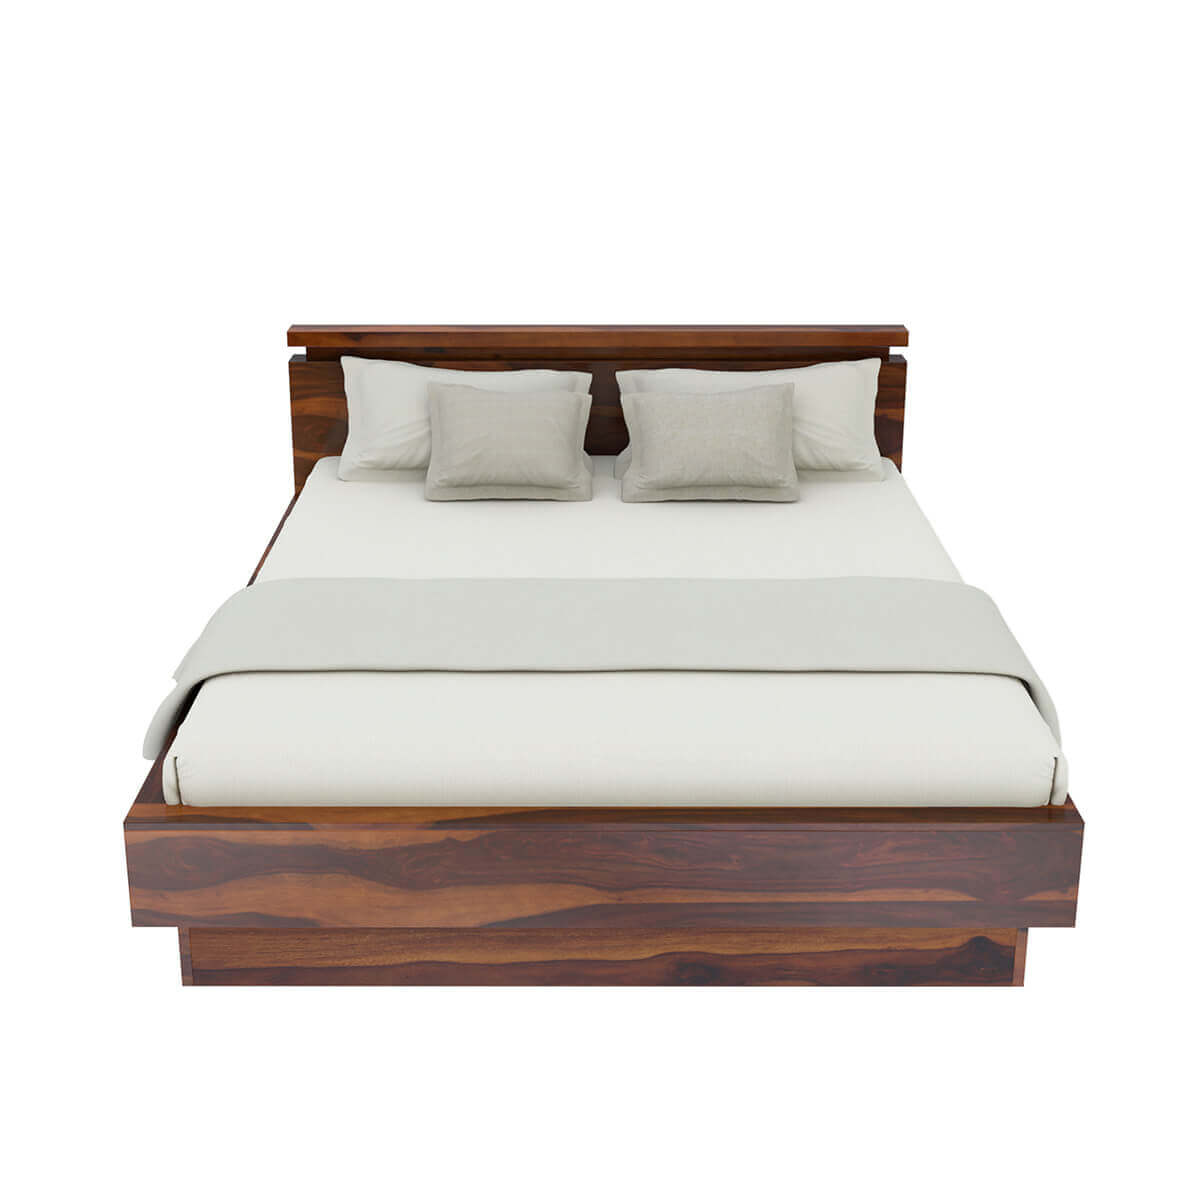 Solid Wood Bed Modern Simplicity Solid Wood King Size Platform Bed